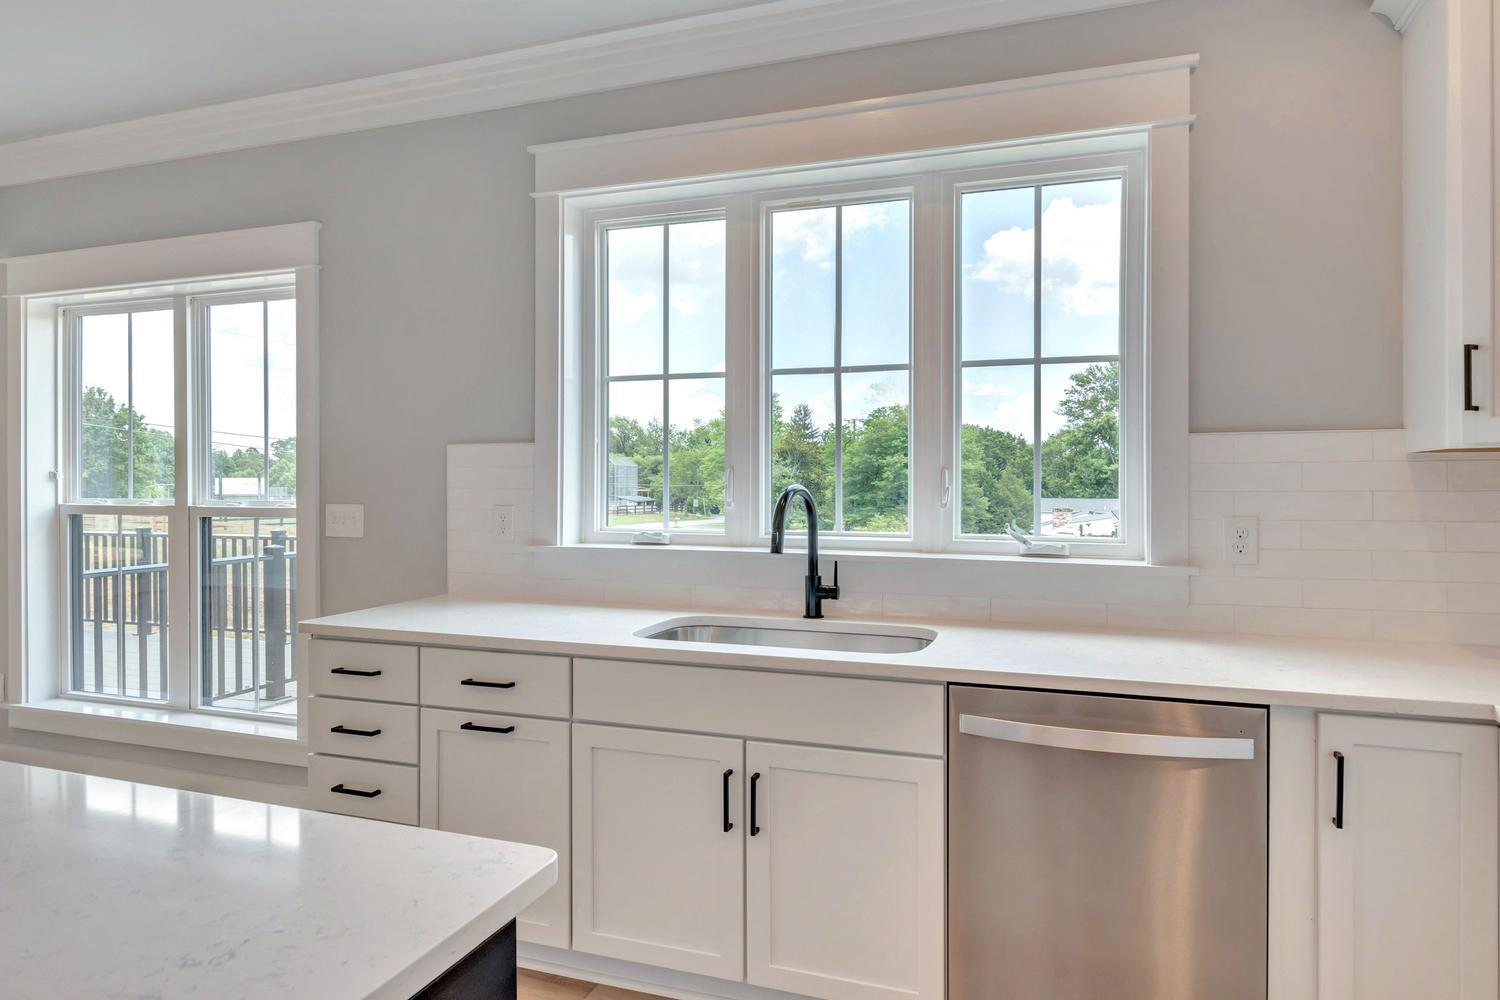 Kitchen featured in The Mechum By Craig Builders in Charlottesville, VA